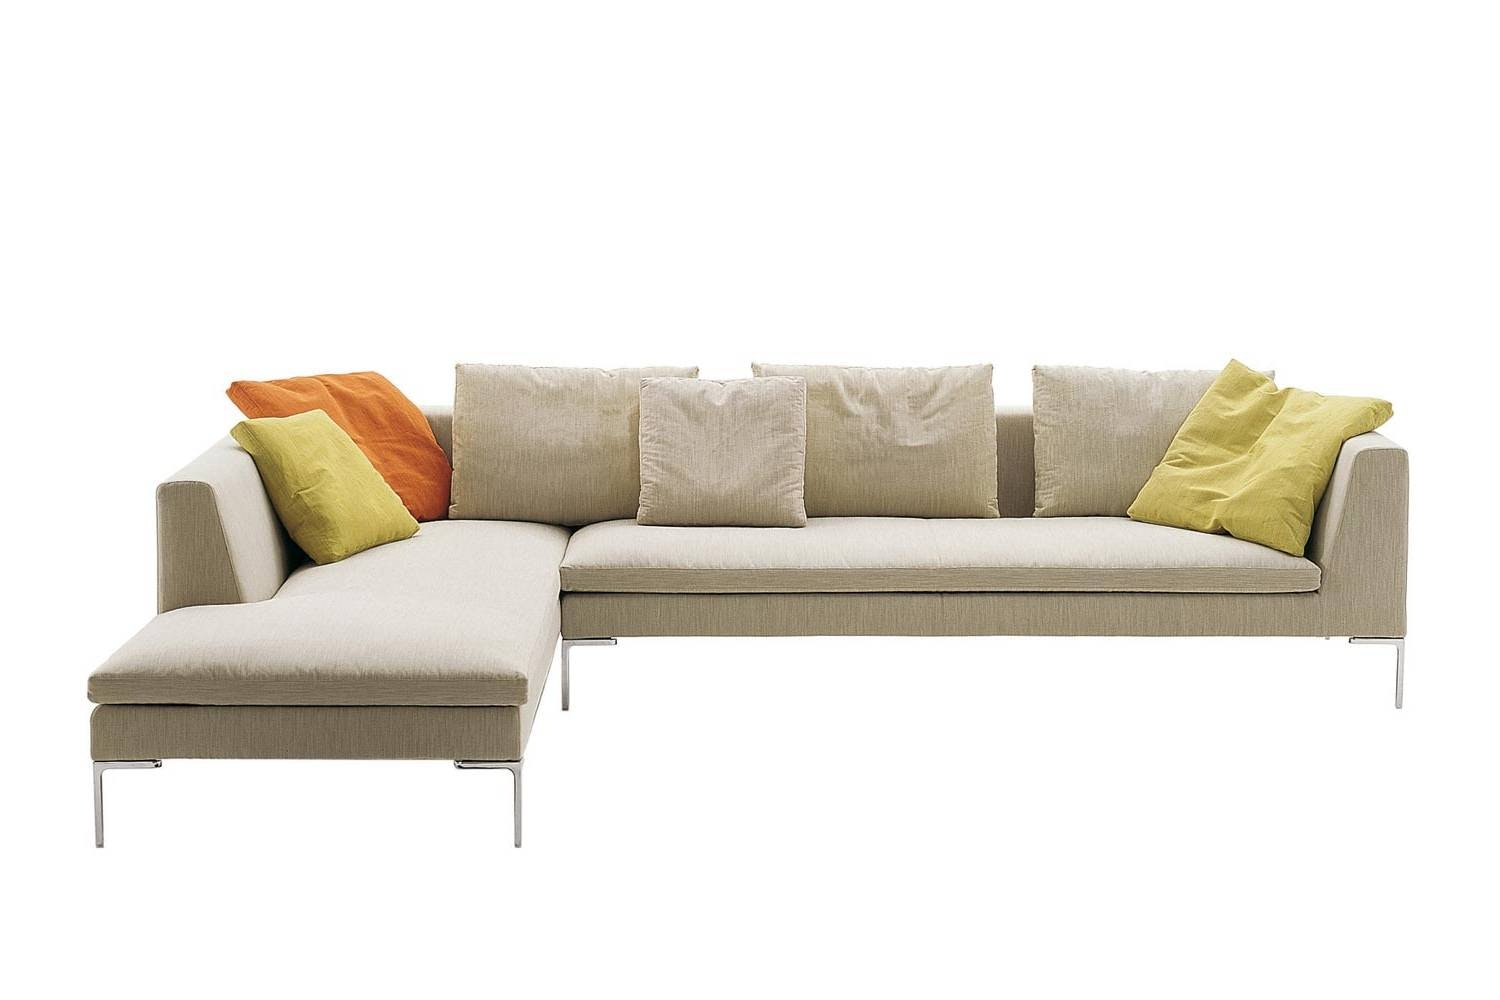 Charles Sofa with Long Left Chaise - Fabric by Antonio Citterio for B&B Italia